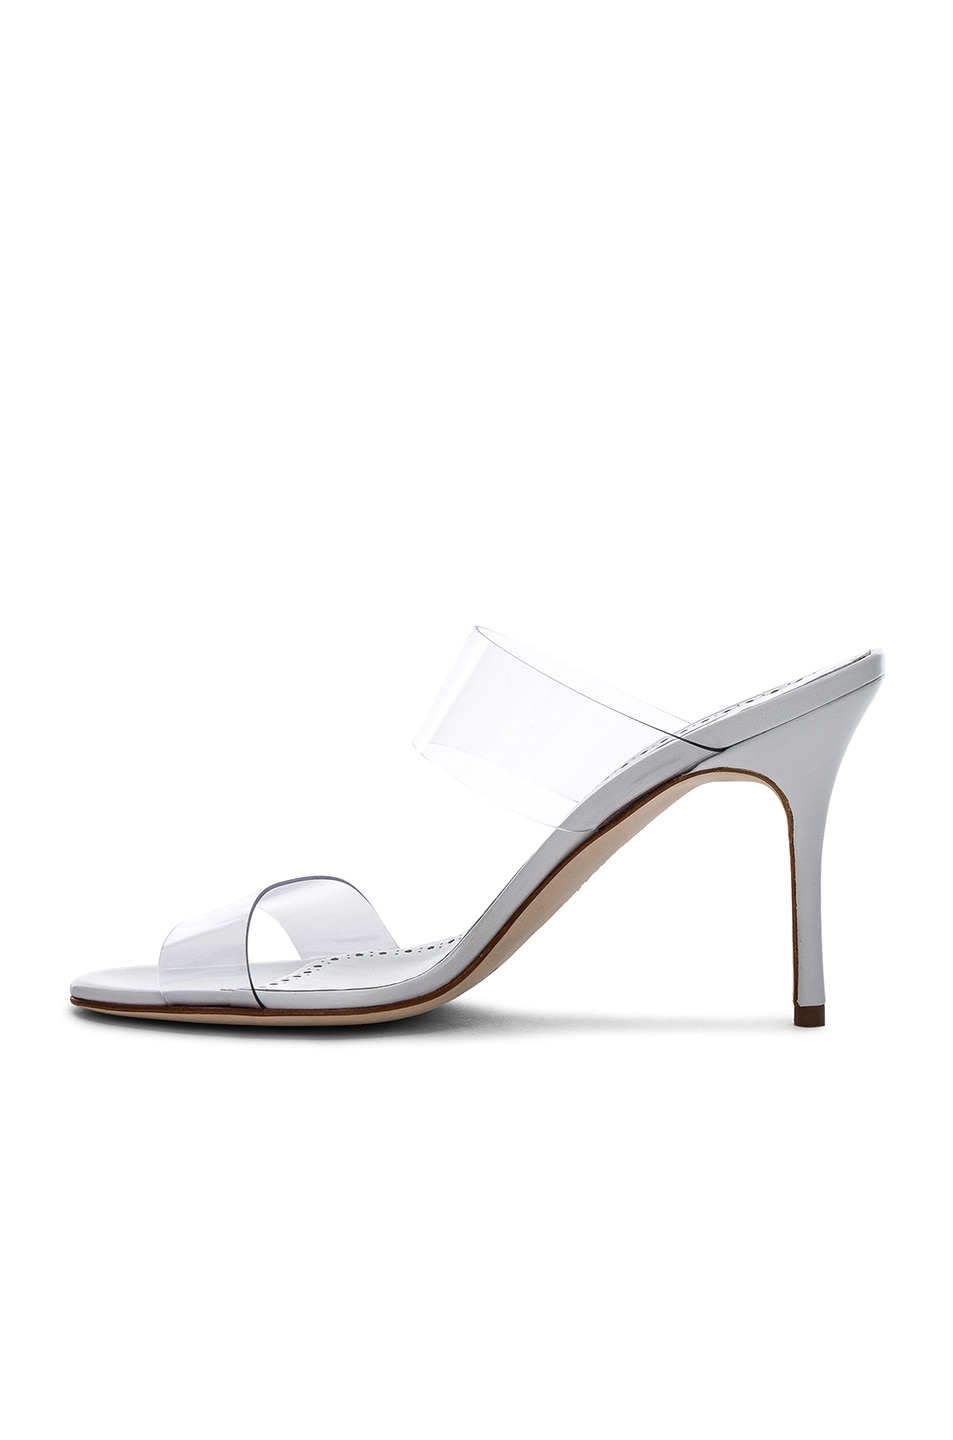 Image 5 of Manolo Blahnik PVC Scolto Sandals in White Leather